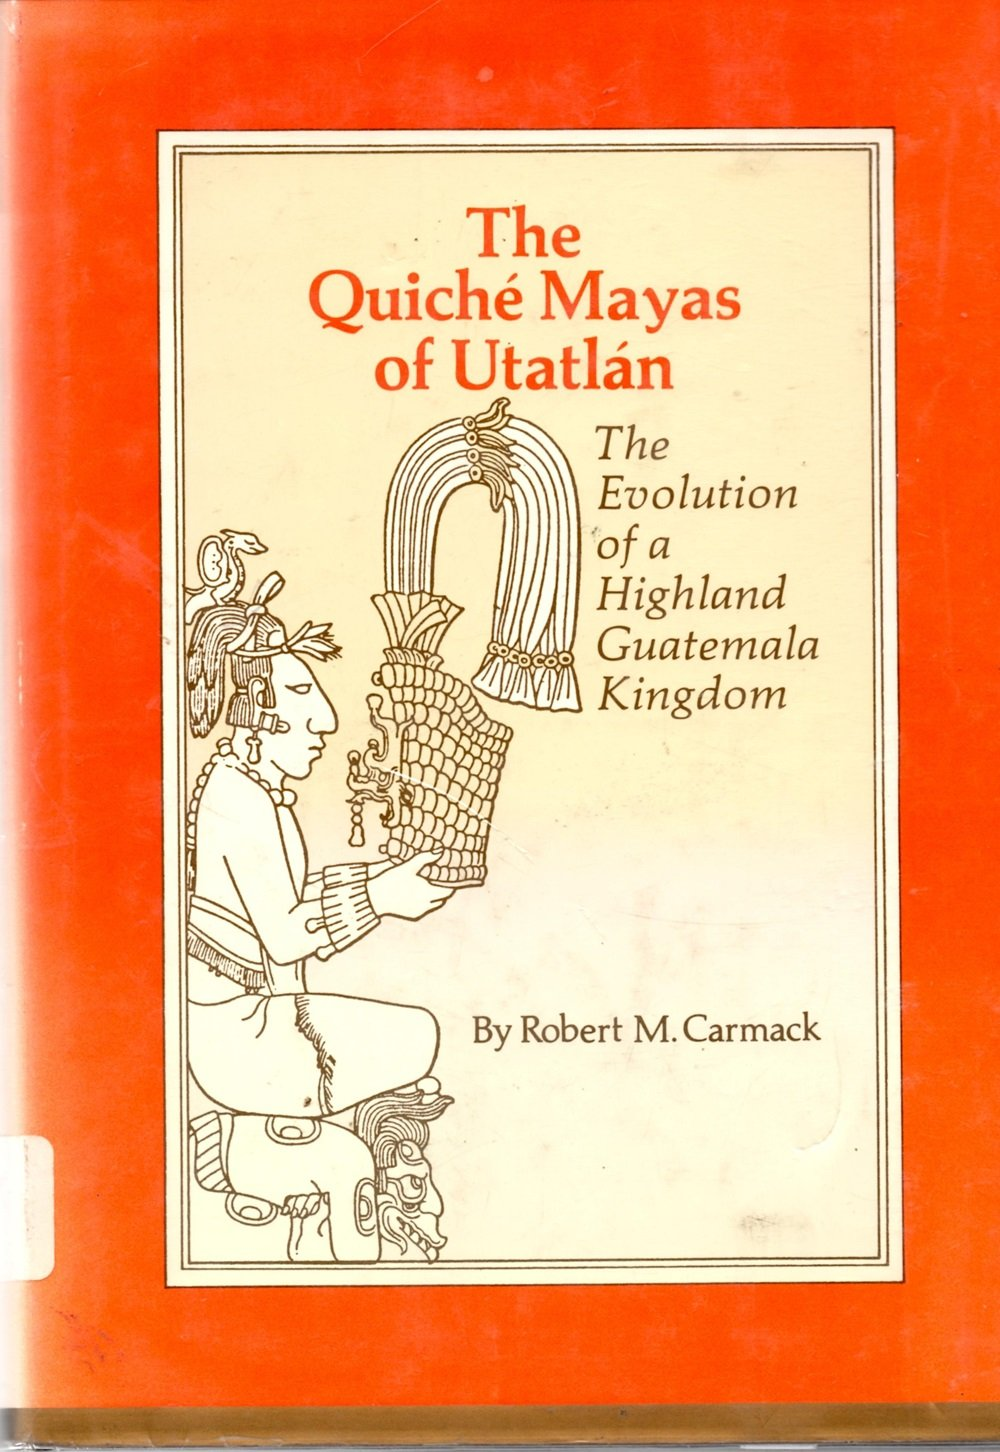 The Quiche Mayas of Utatlan: The Evolution of a Highland Guatemala Kingdom (Civilization of the American Indian Series)